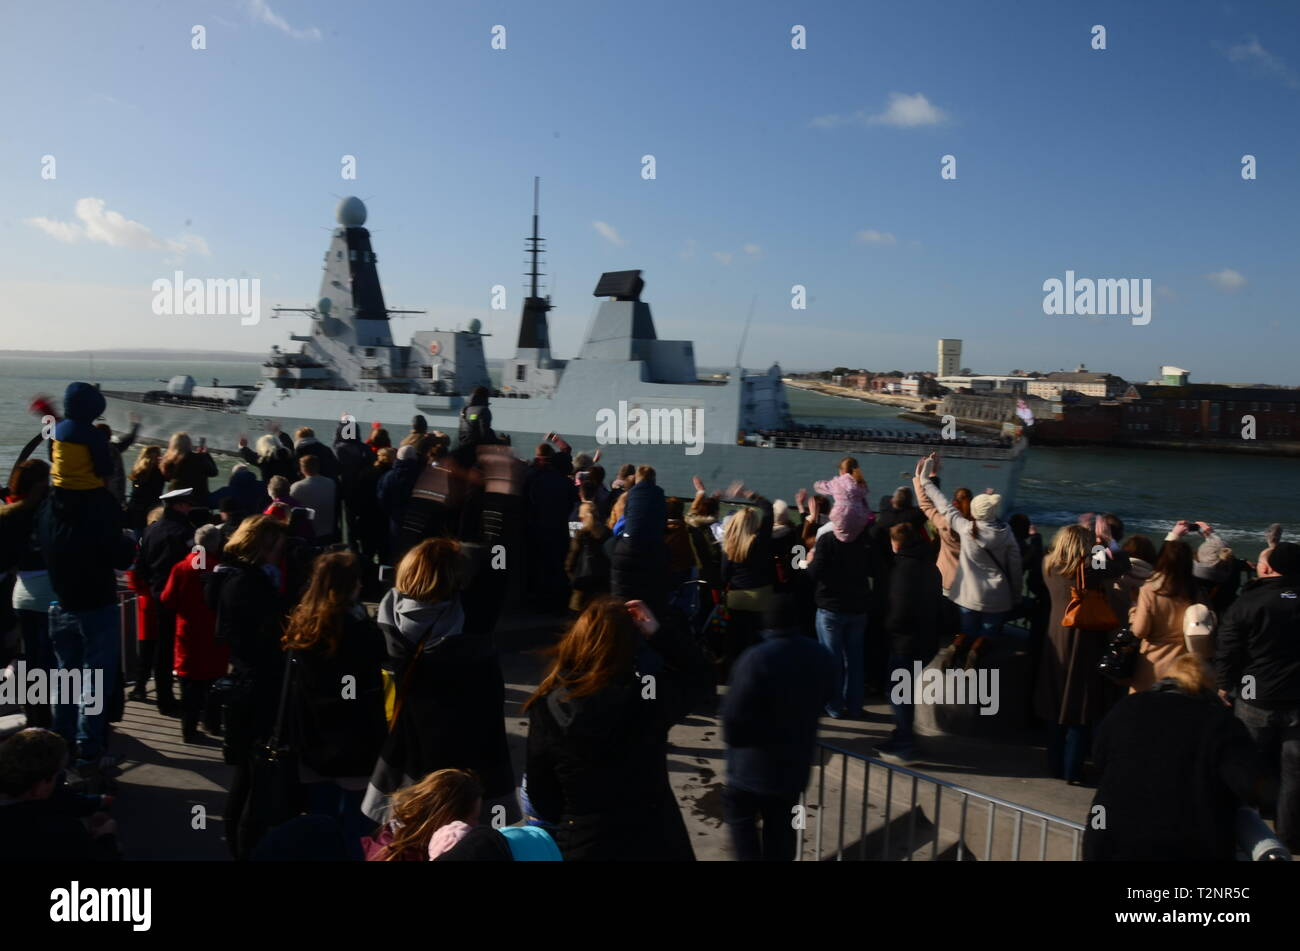 HMS Duncan 037 Type 45 or Daring-class air-defence destroyers - Stock Image